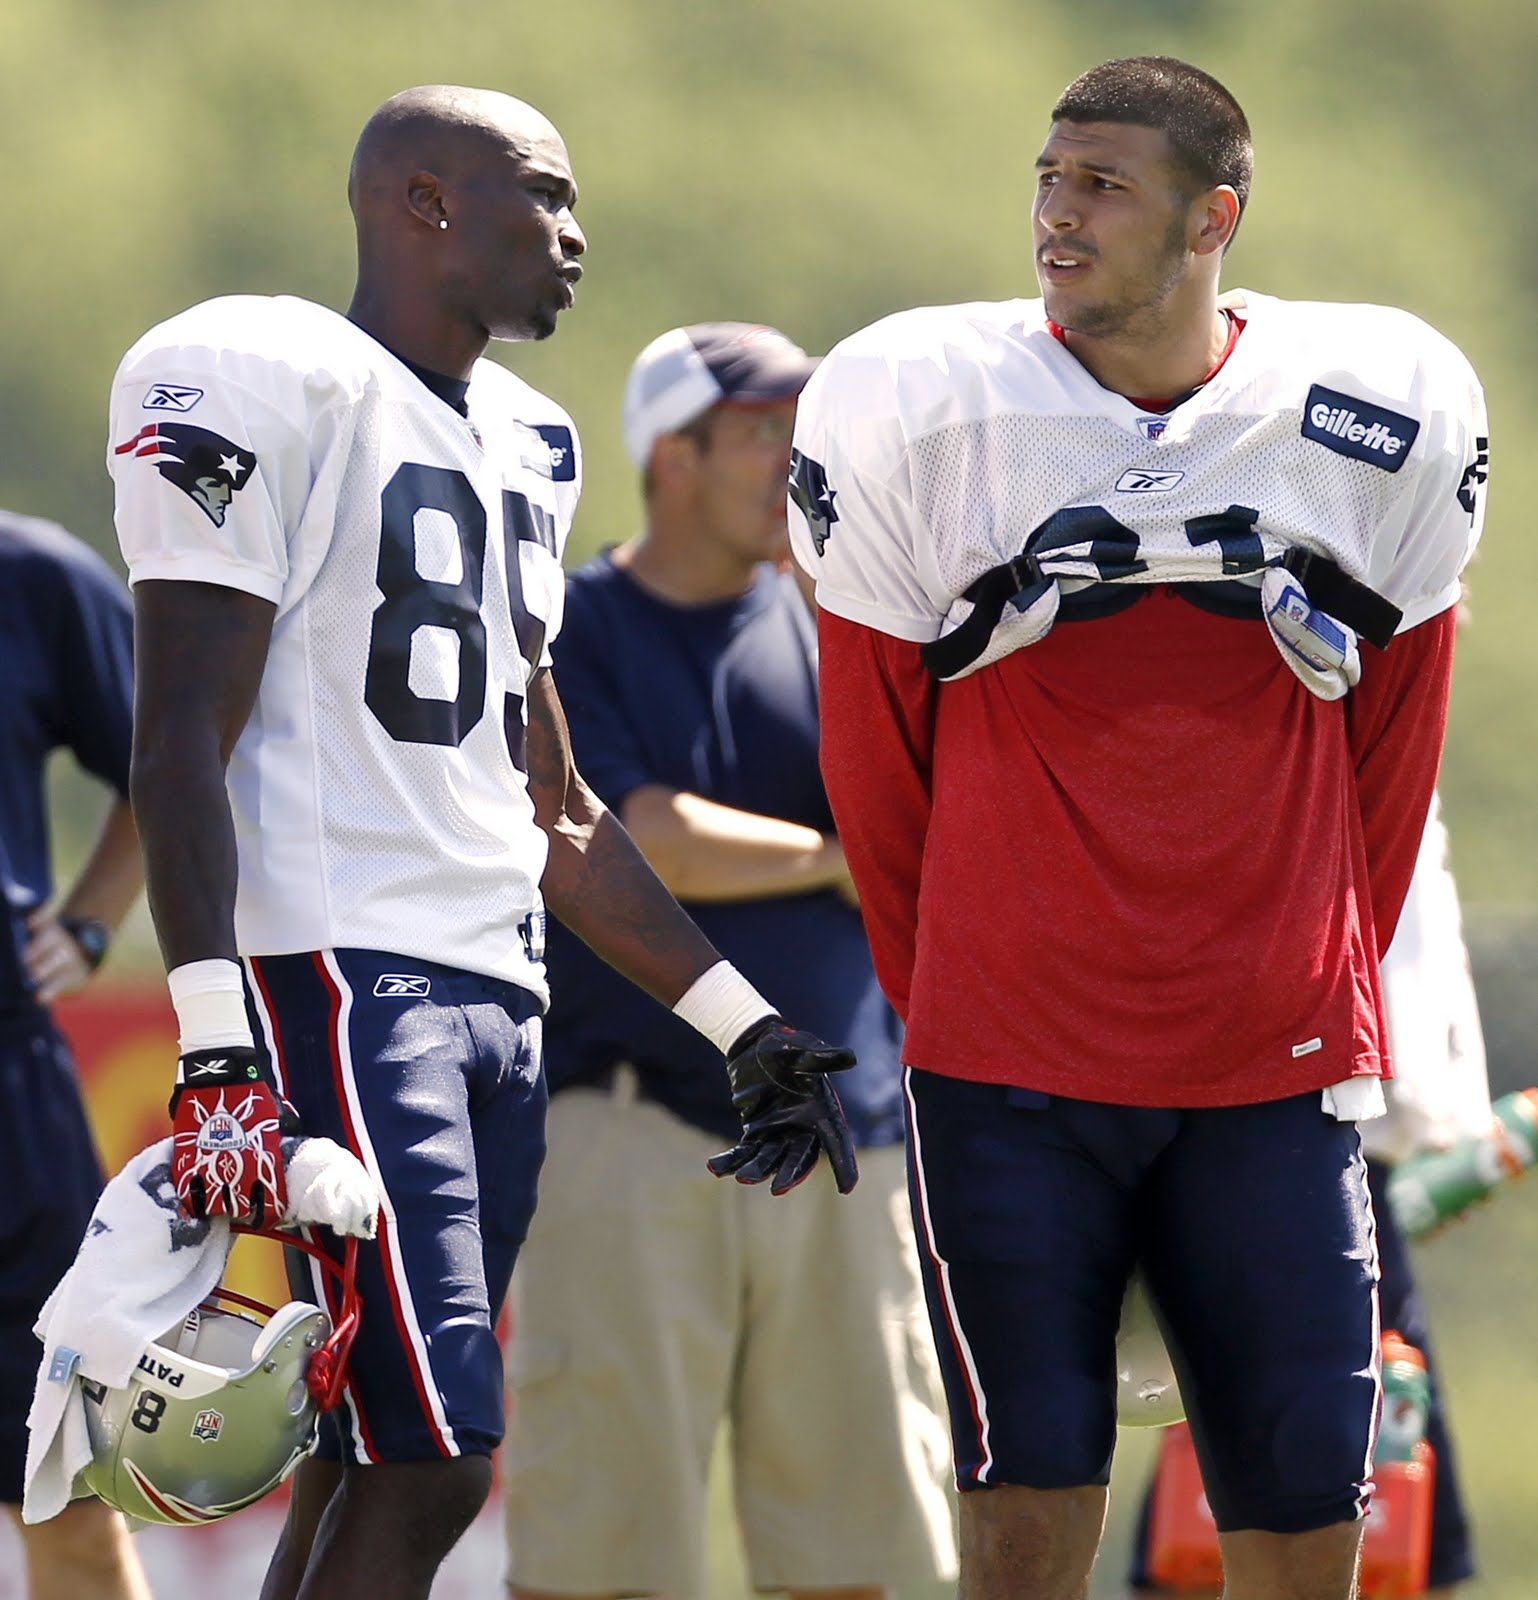 Aaron hernandez was cut by the new england patriots after he was - Aaron Hernandez Gives Up No 85 To Chad Ochocinco Becomes No